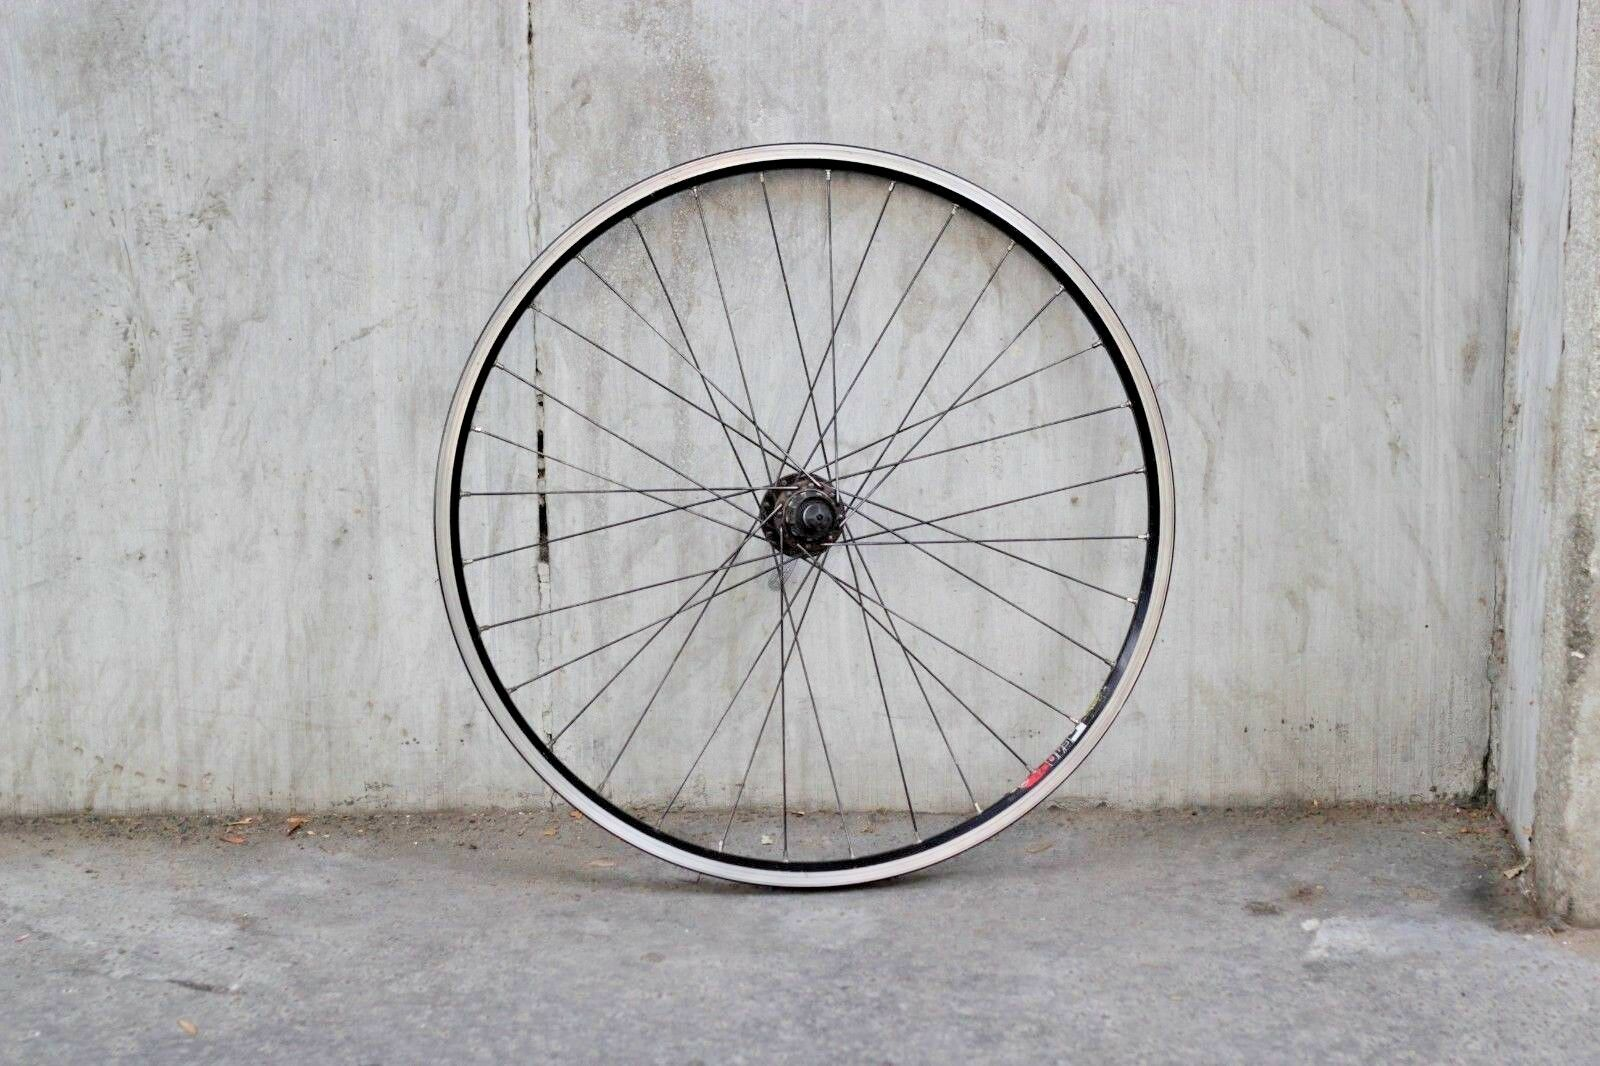 DT Swiss Hügi 240 Mavic 519 mountain bike rear wheel for cross country enduro